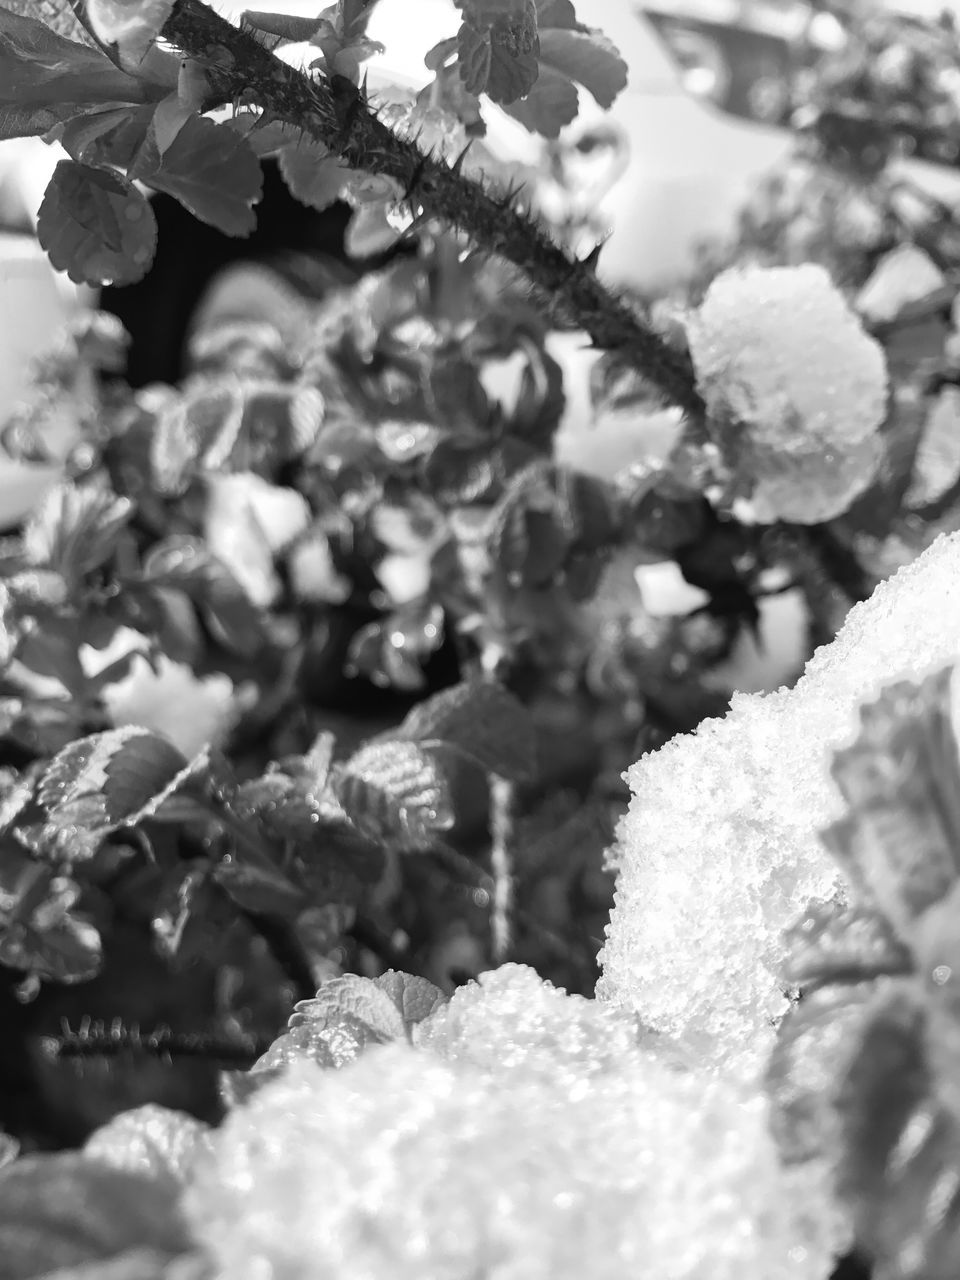 winter, cold temperature, snow, nature, frozen, white color, ice, plant, no people, growth, beauty in nature, close-up, leaf, day, outdoors, ice crystal, fragility, freshness, food